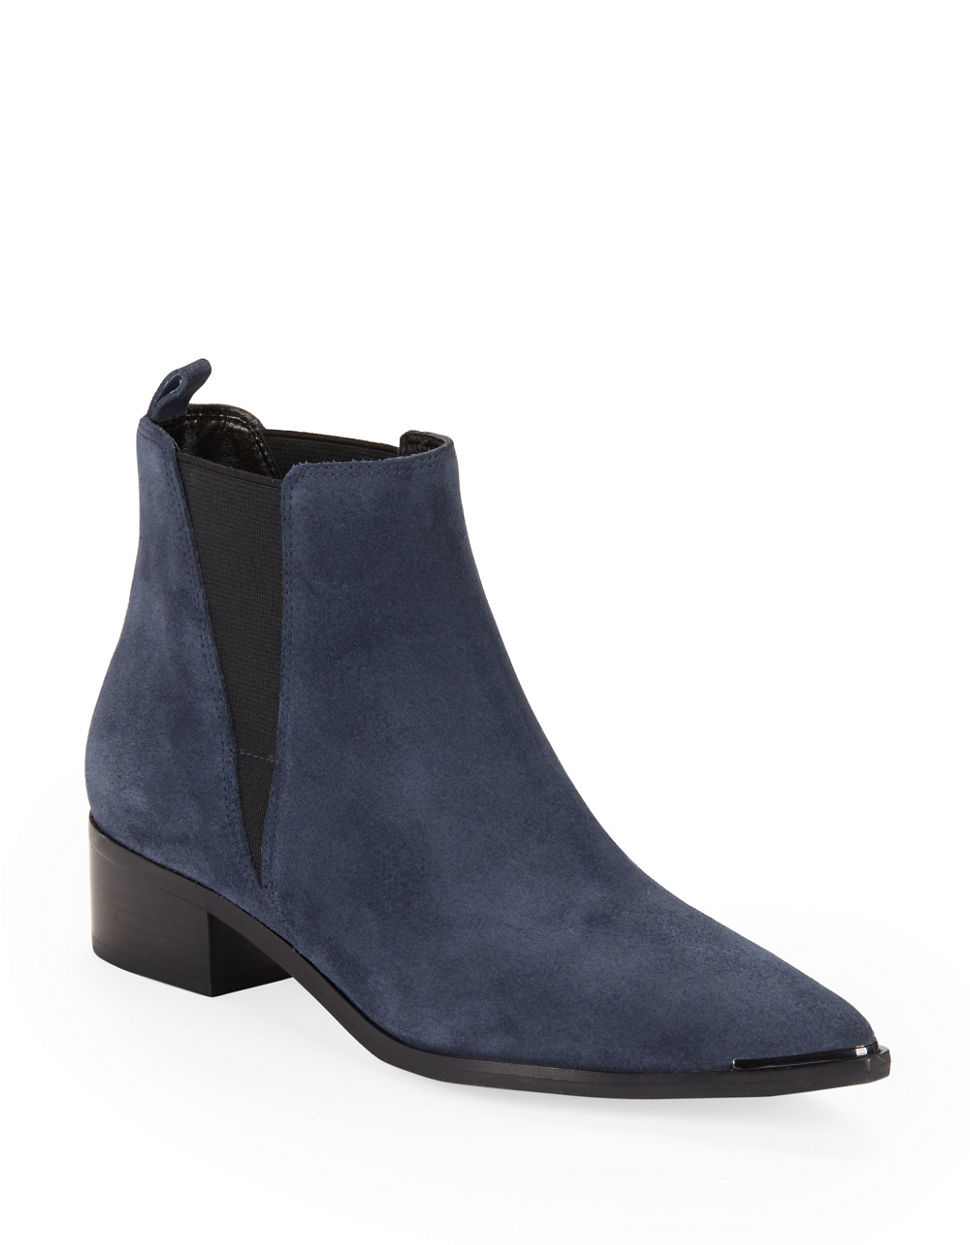 Marc fisher Yale Croco Print Leather Boots in Blue